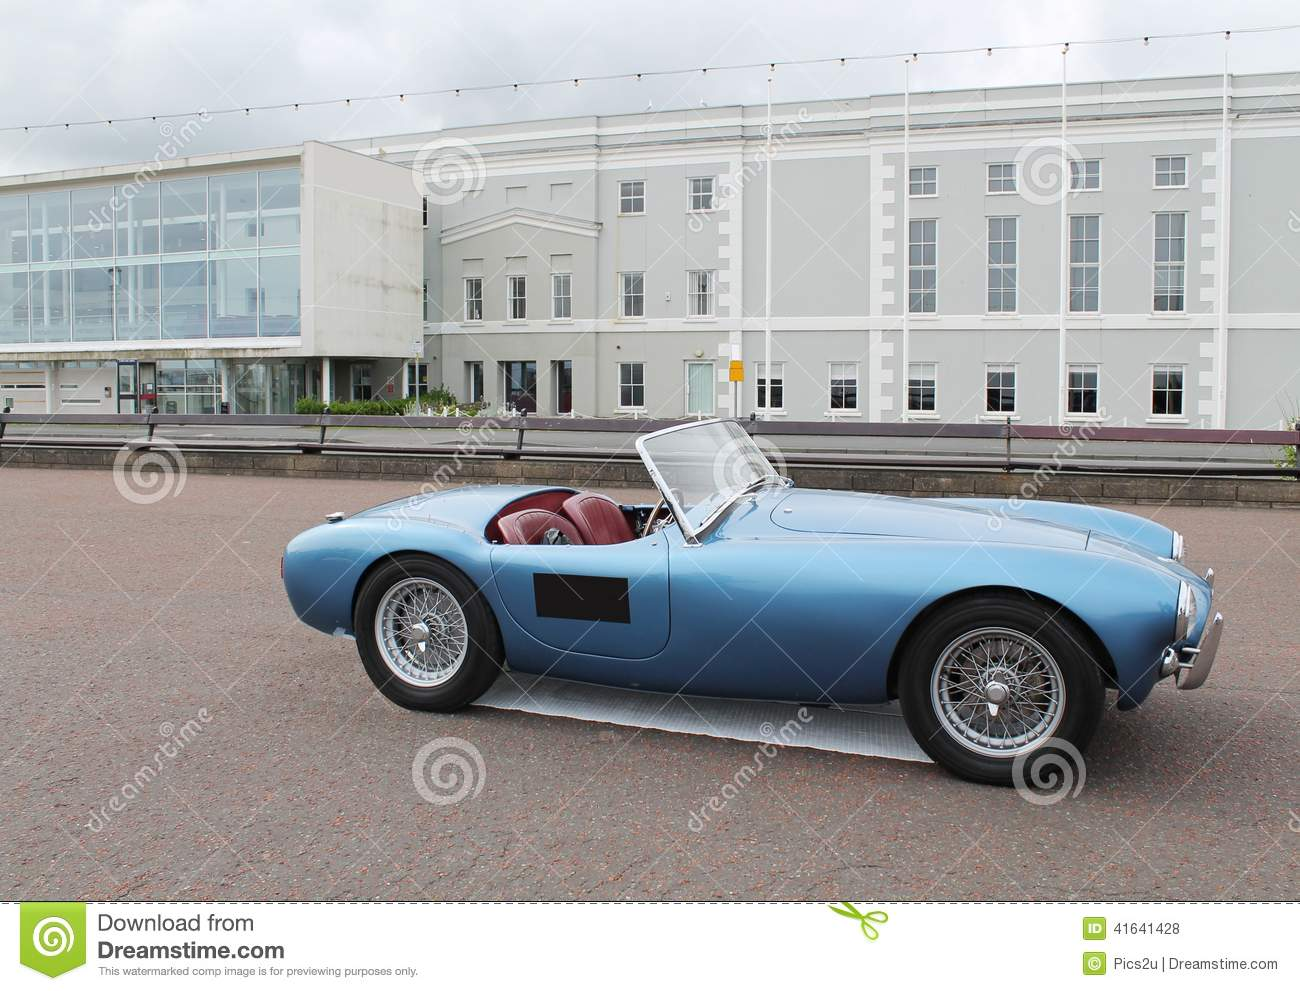 Here is a classic ,retro, vintage European British sports car.